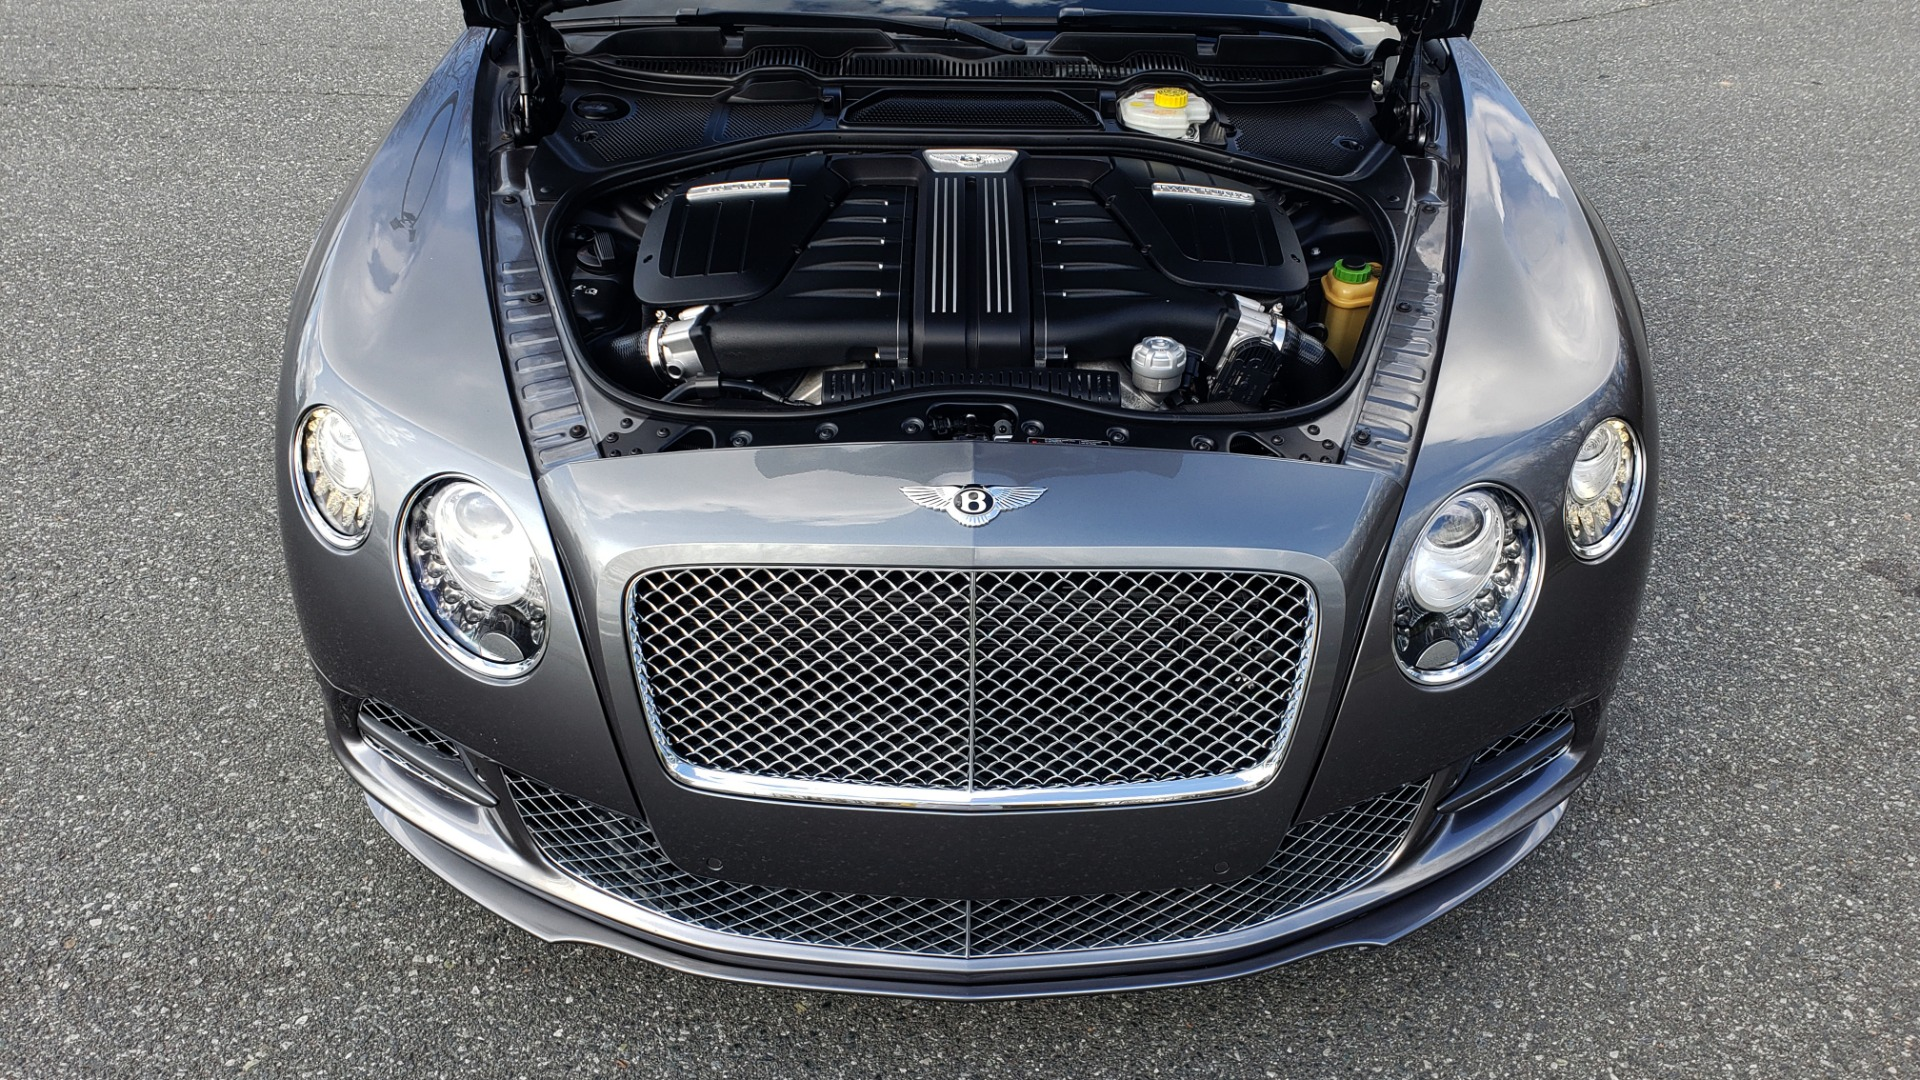 Used 2015 Bentley CONTINENTAL SPEED CONV / 6.0L W12 / NAV / VENT SEATS / REARVIEW for sale Sold at Formula Imports in Charlotte NC 28227 24